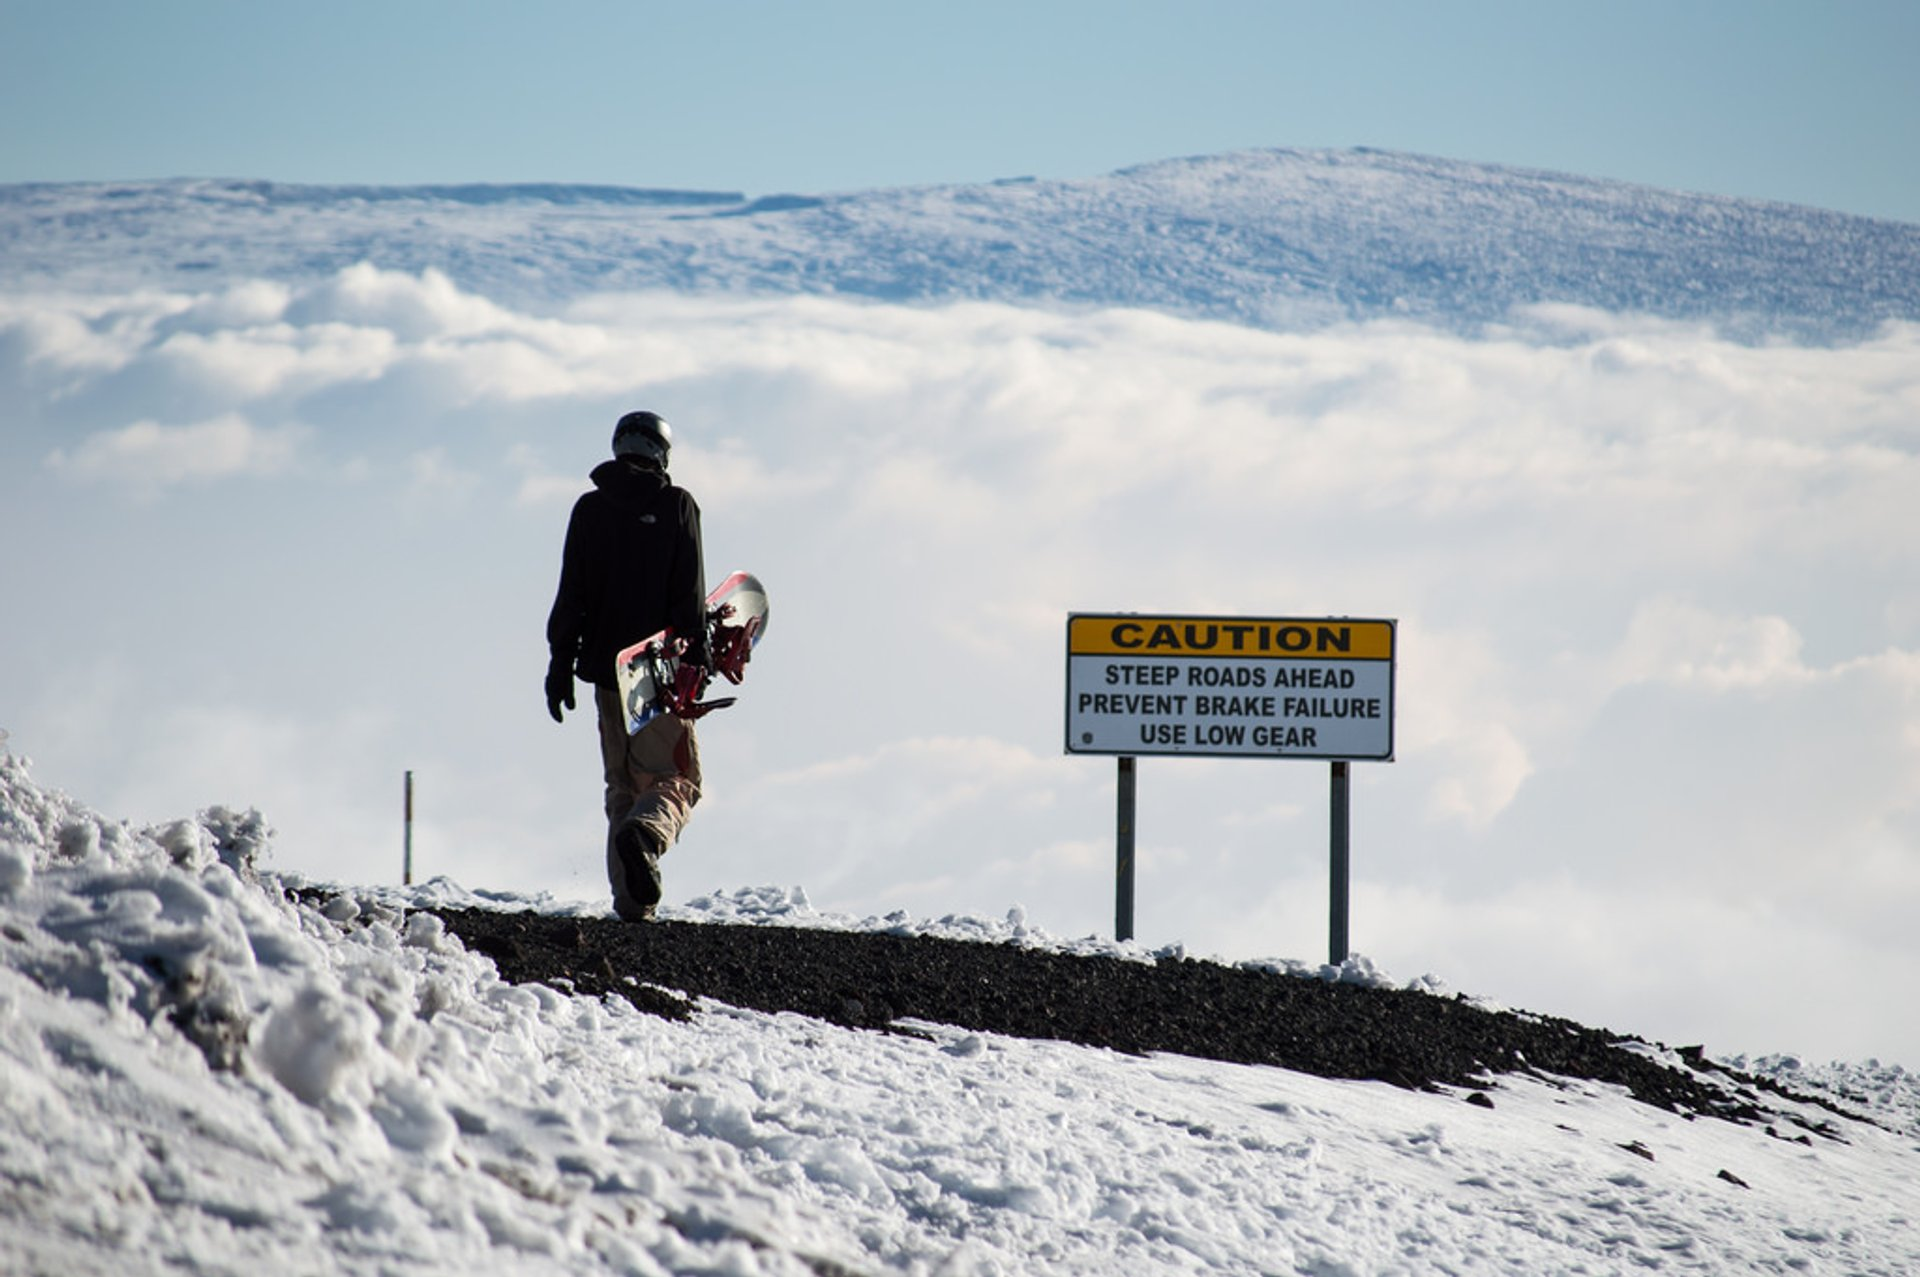 Best time for Skiing and Snowboarding Mauna Kea in Hawaii 2019